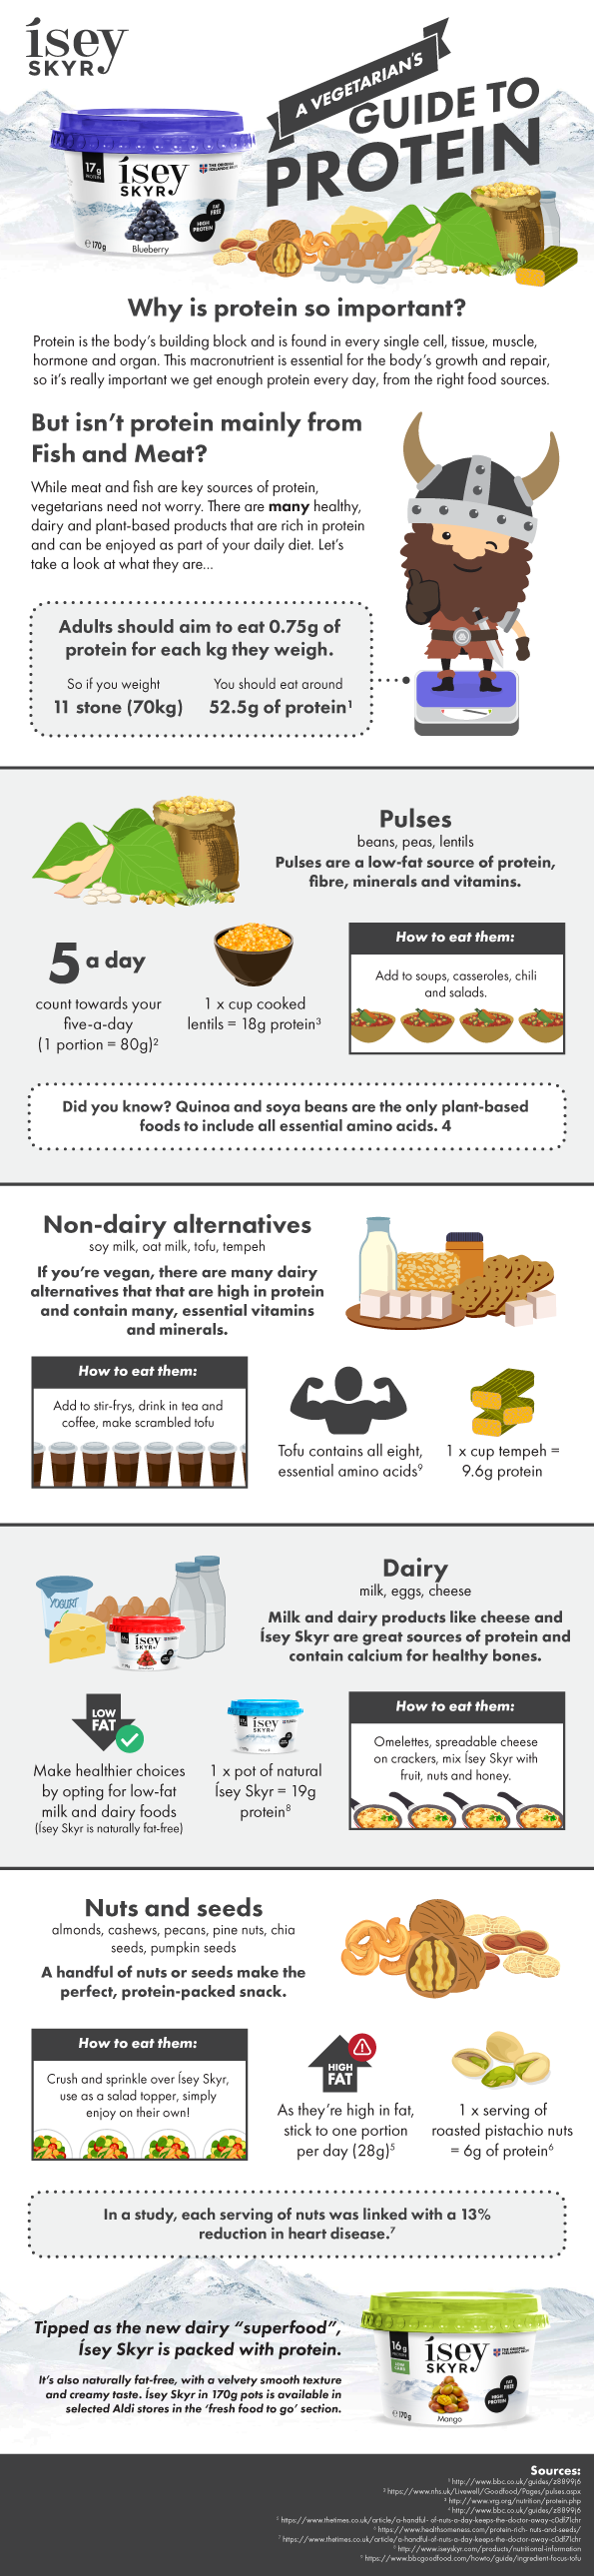 Skyr guide to protein infographic